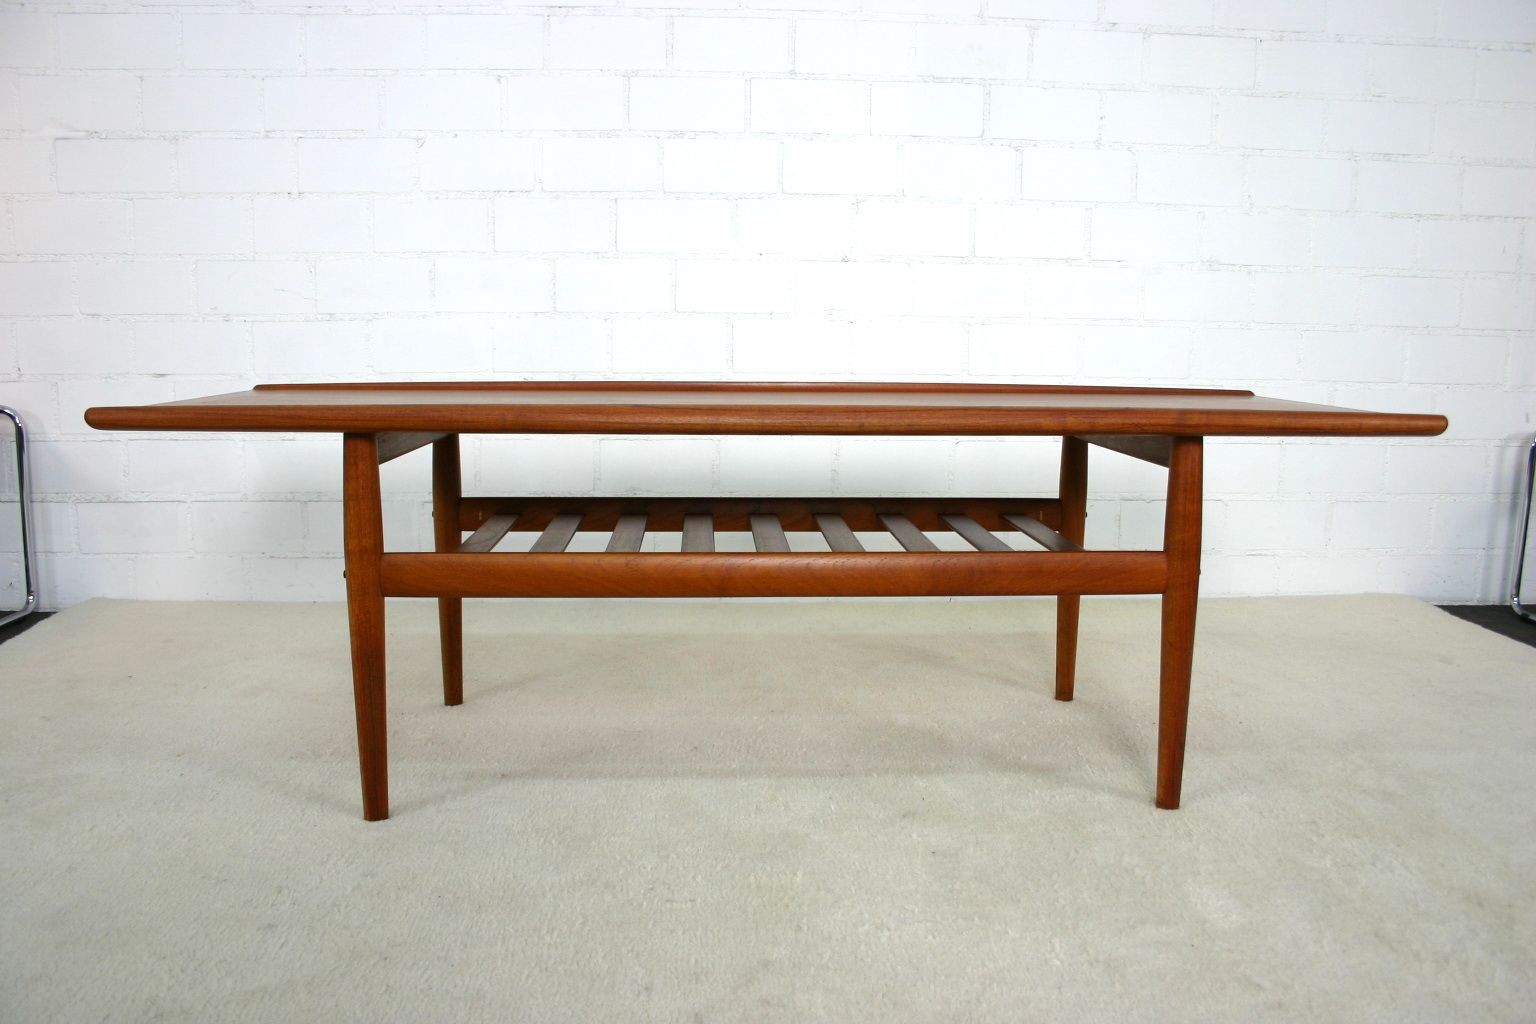 Danish solid teak coffee table by grete jalk for glostrup 1960s danish solid teak coffee table by grete jalk for glostrup 1960s for sale at pamono geotapseo Gallery